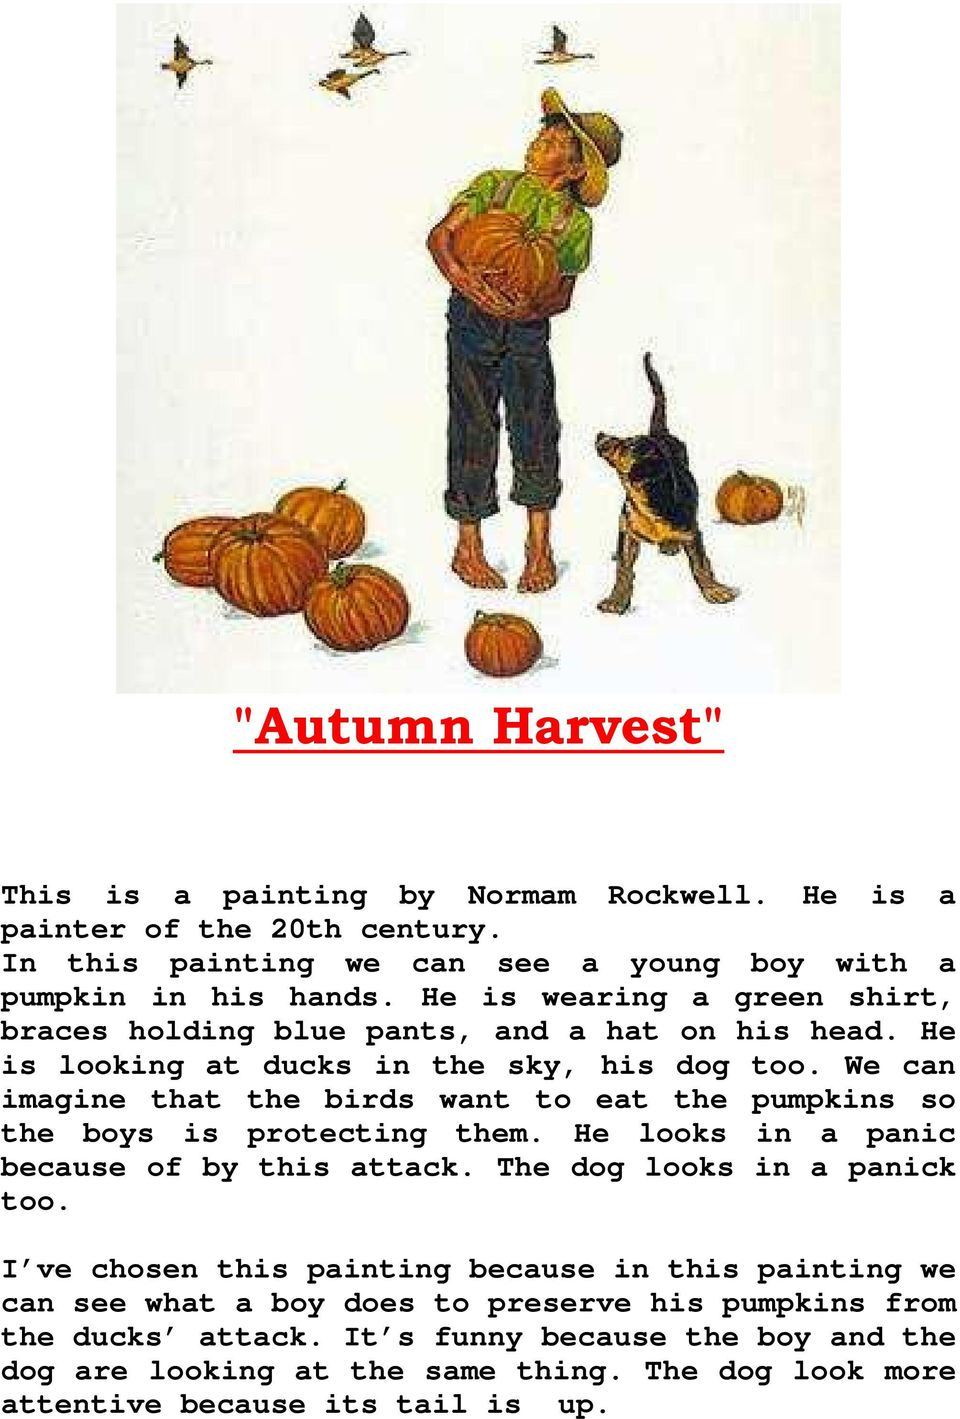 We can imagine that the birds want to eat the pumpkins so the boys is protecting them. He looks in a panic because of by this attack. The dog looks in a panick too.